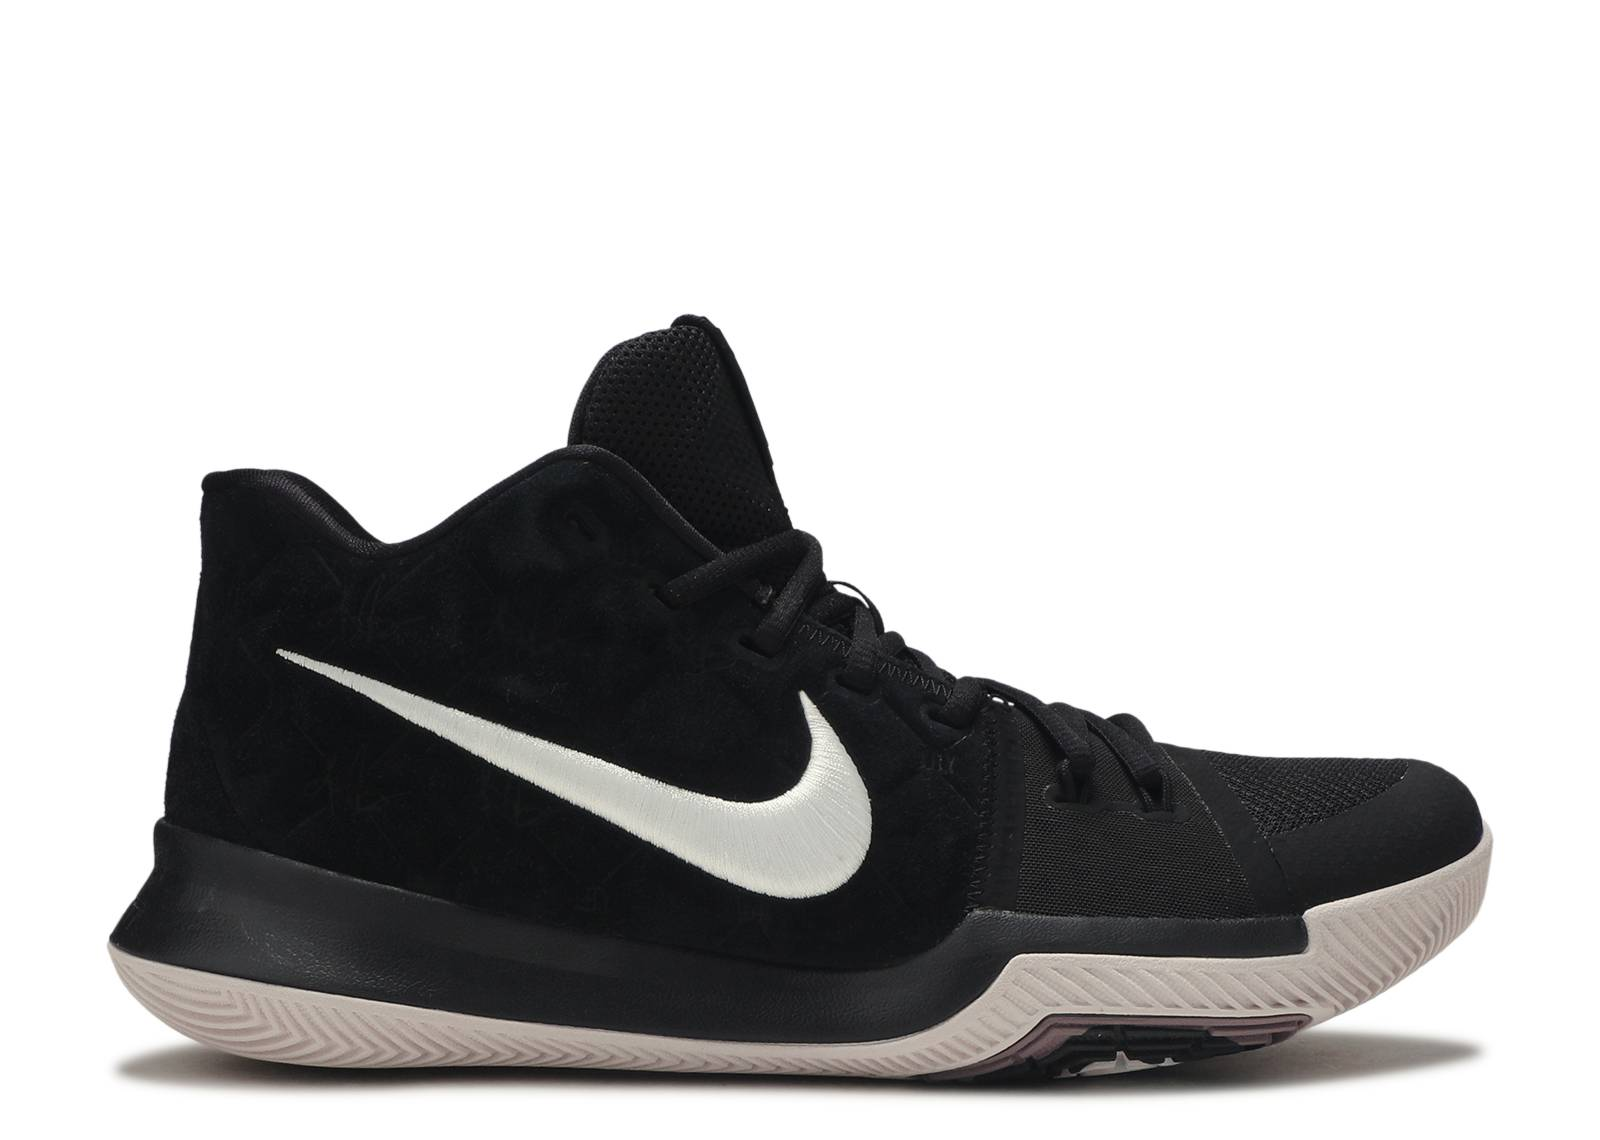 7fcbc3bc3198 Kyrie 3 - Nike - 852395 010 - black white - silt red